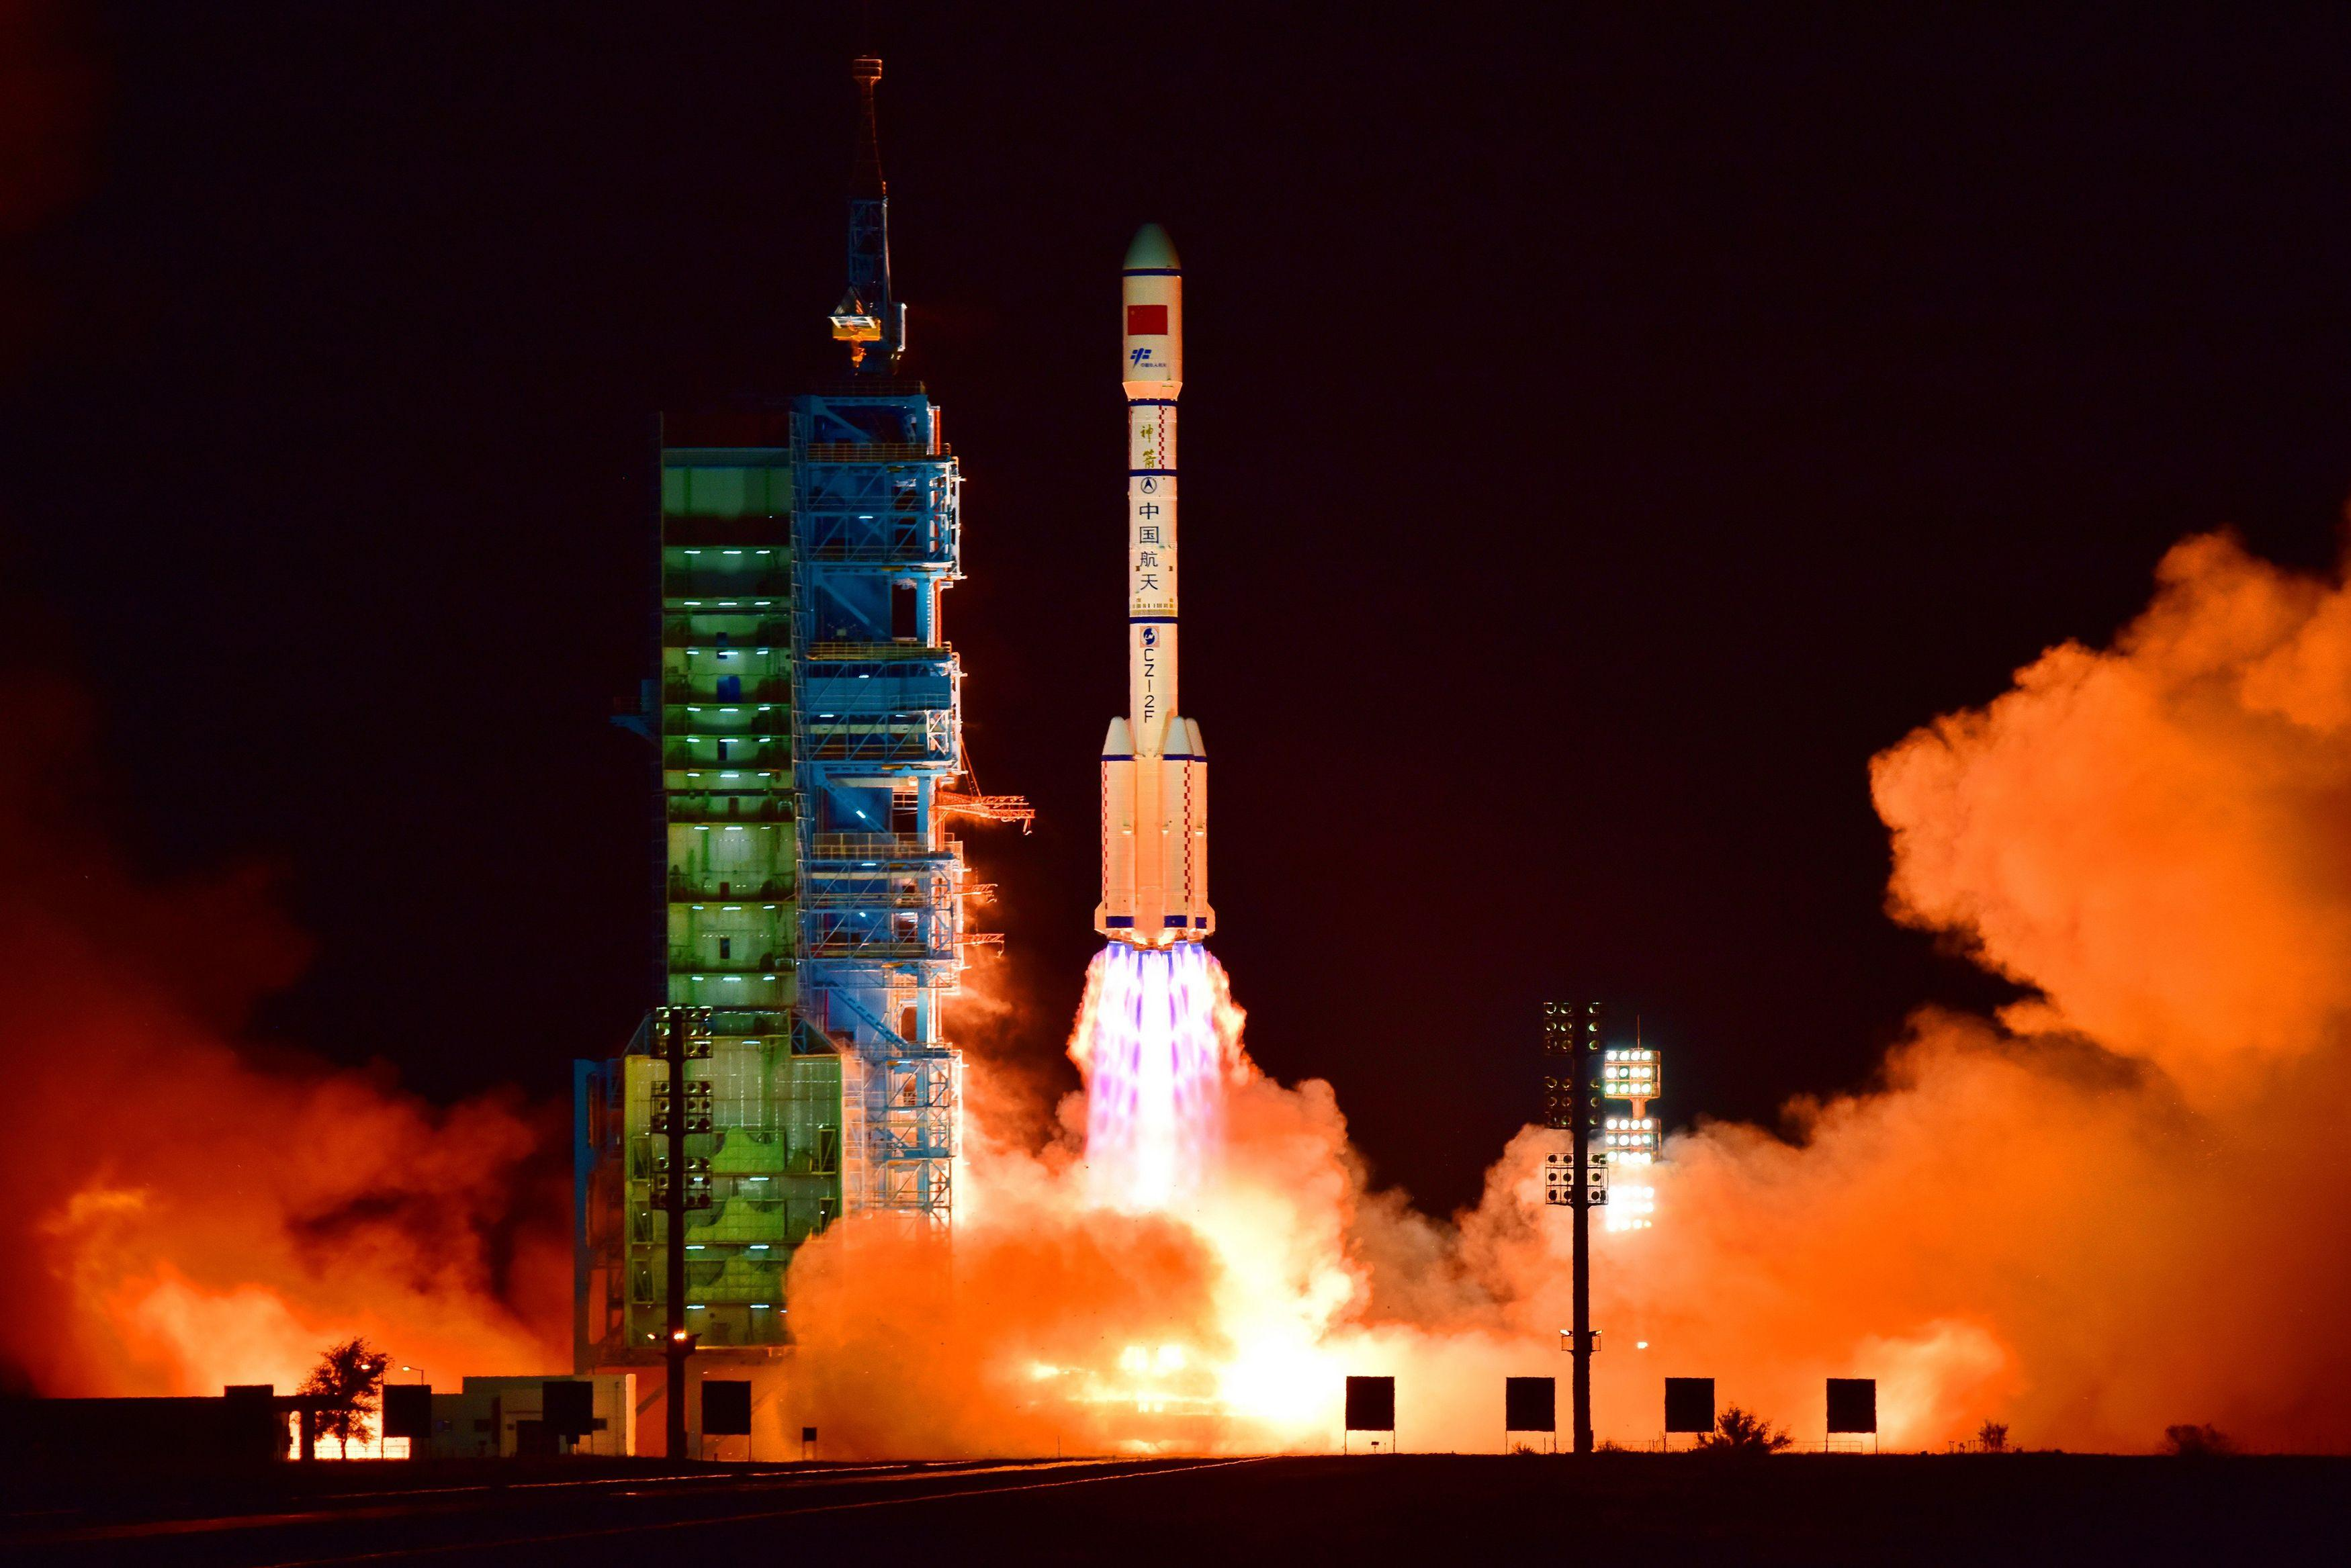 Tiangong-2 Introduction [19659011] China The Tiangong 2 space laboratory will be launched on 15 September 2016 with a long March 2F rocket from the Jiuquan satellite launch center in the Gobi Desert in Gansu province, China. </span> <span class=